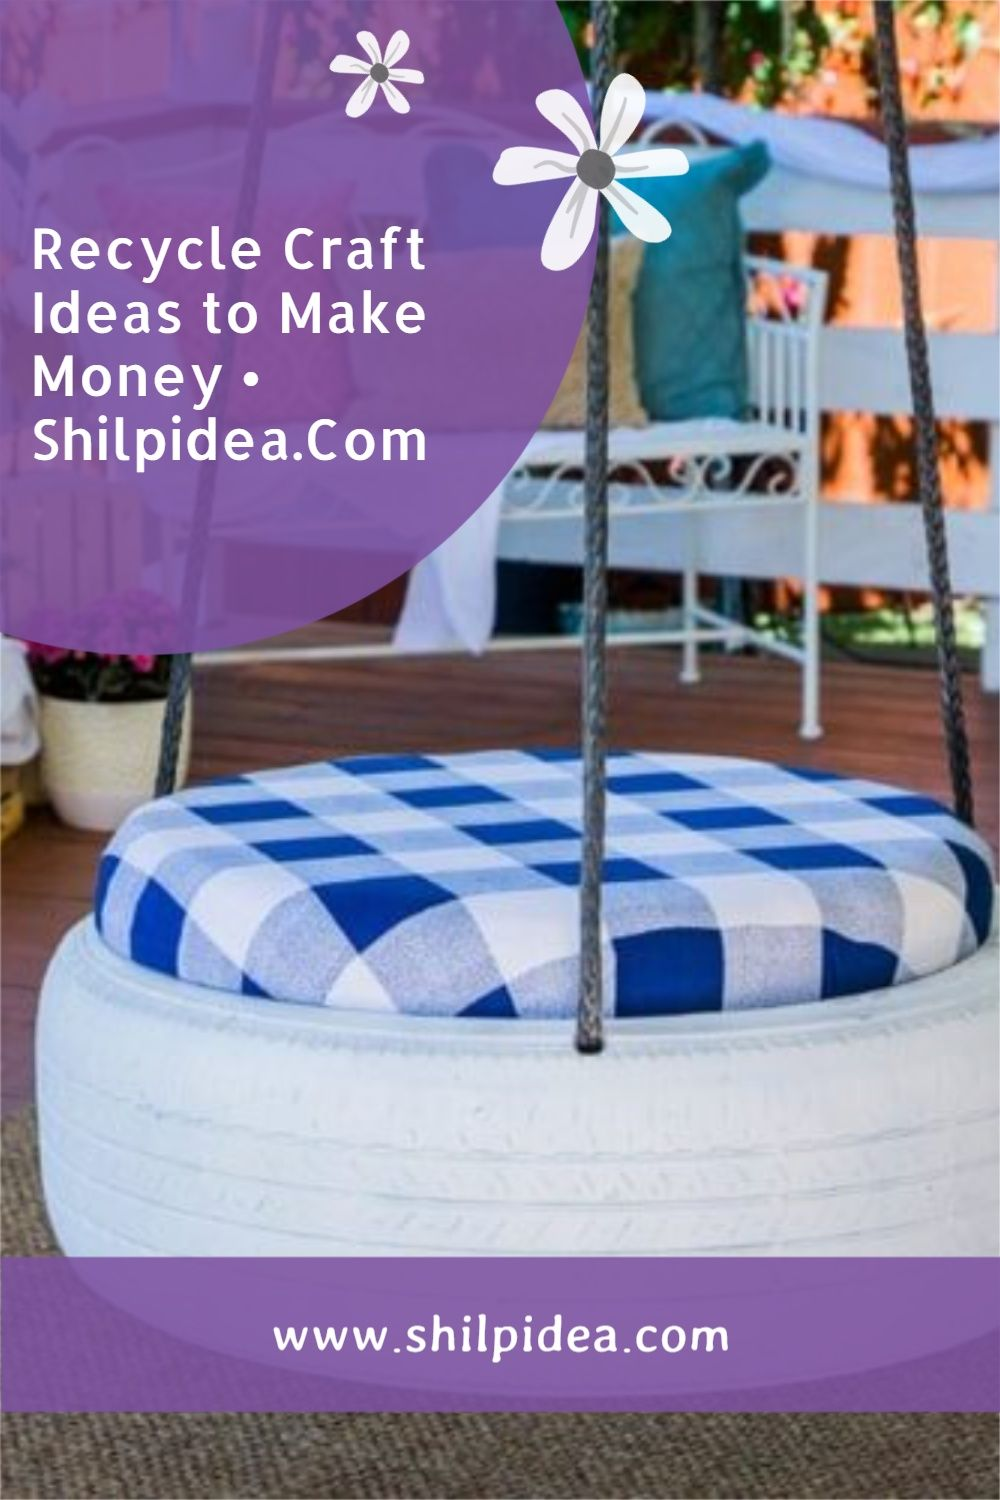 Recycle Craft Ideas to Make Money Shilpidea pin